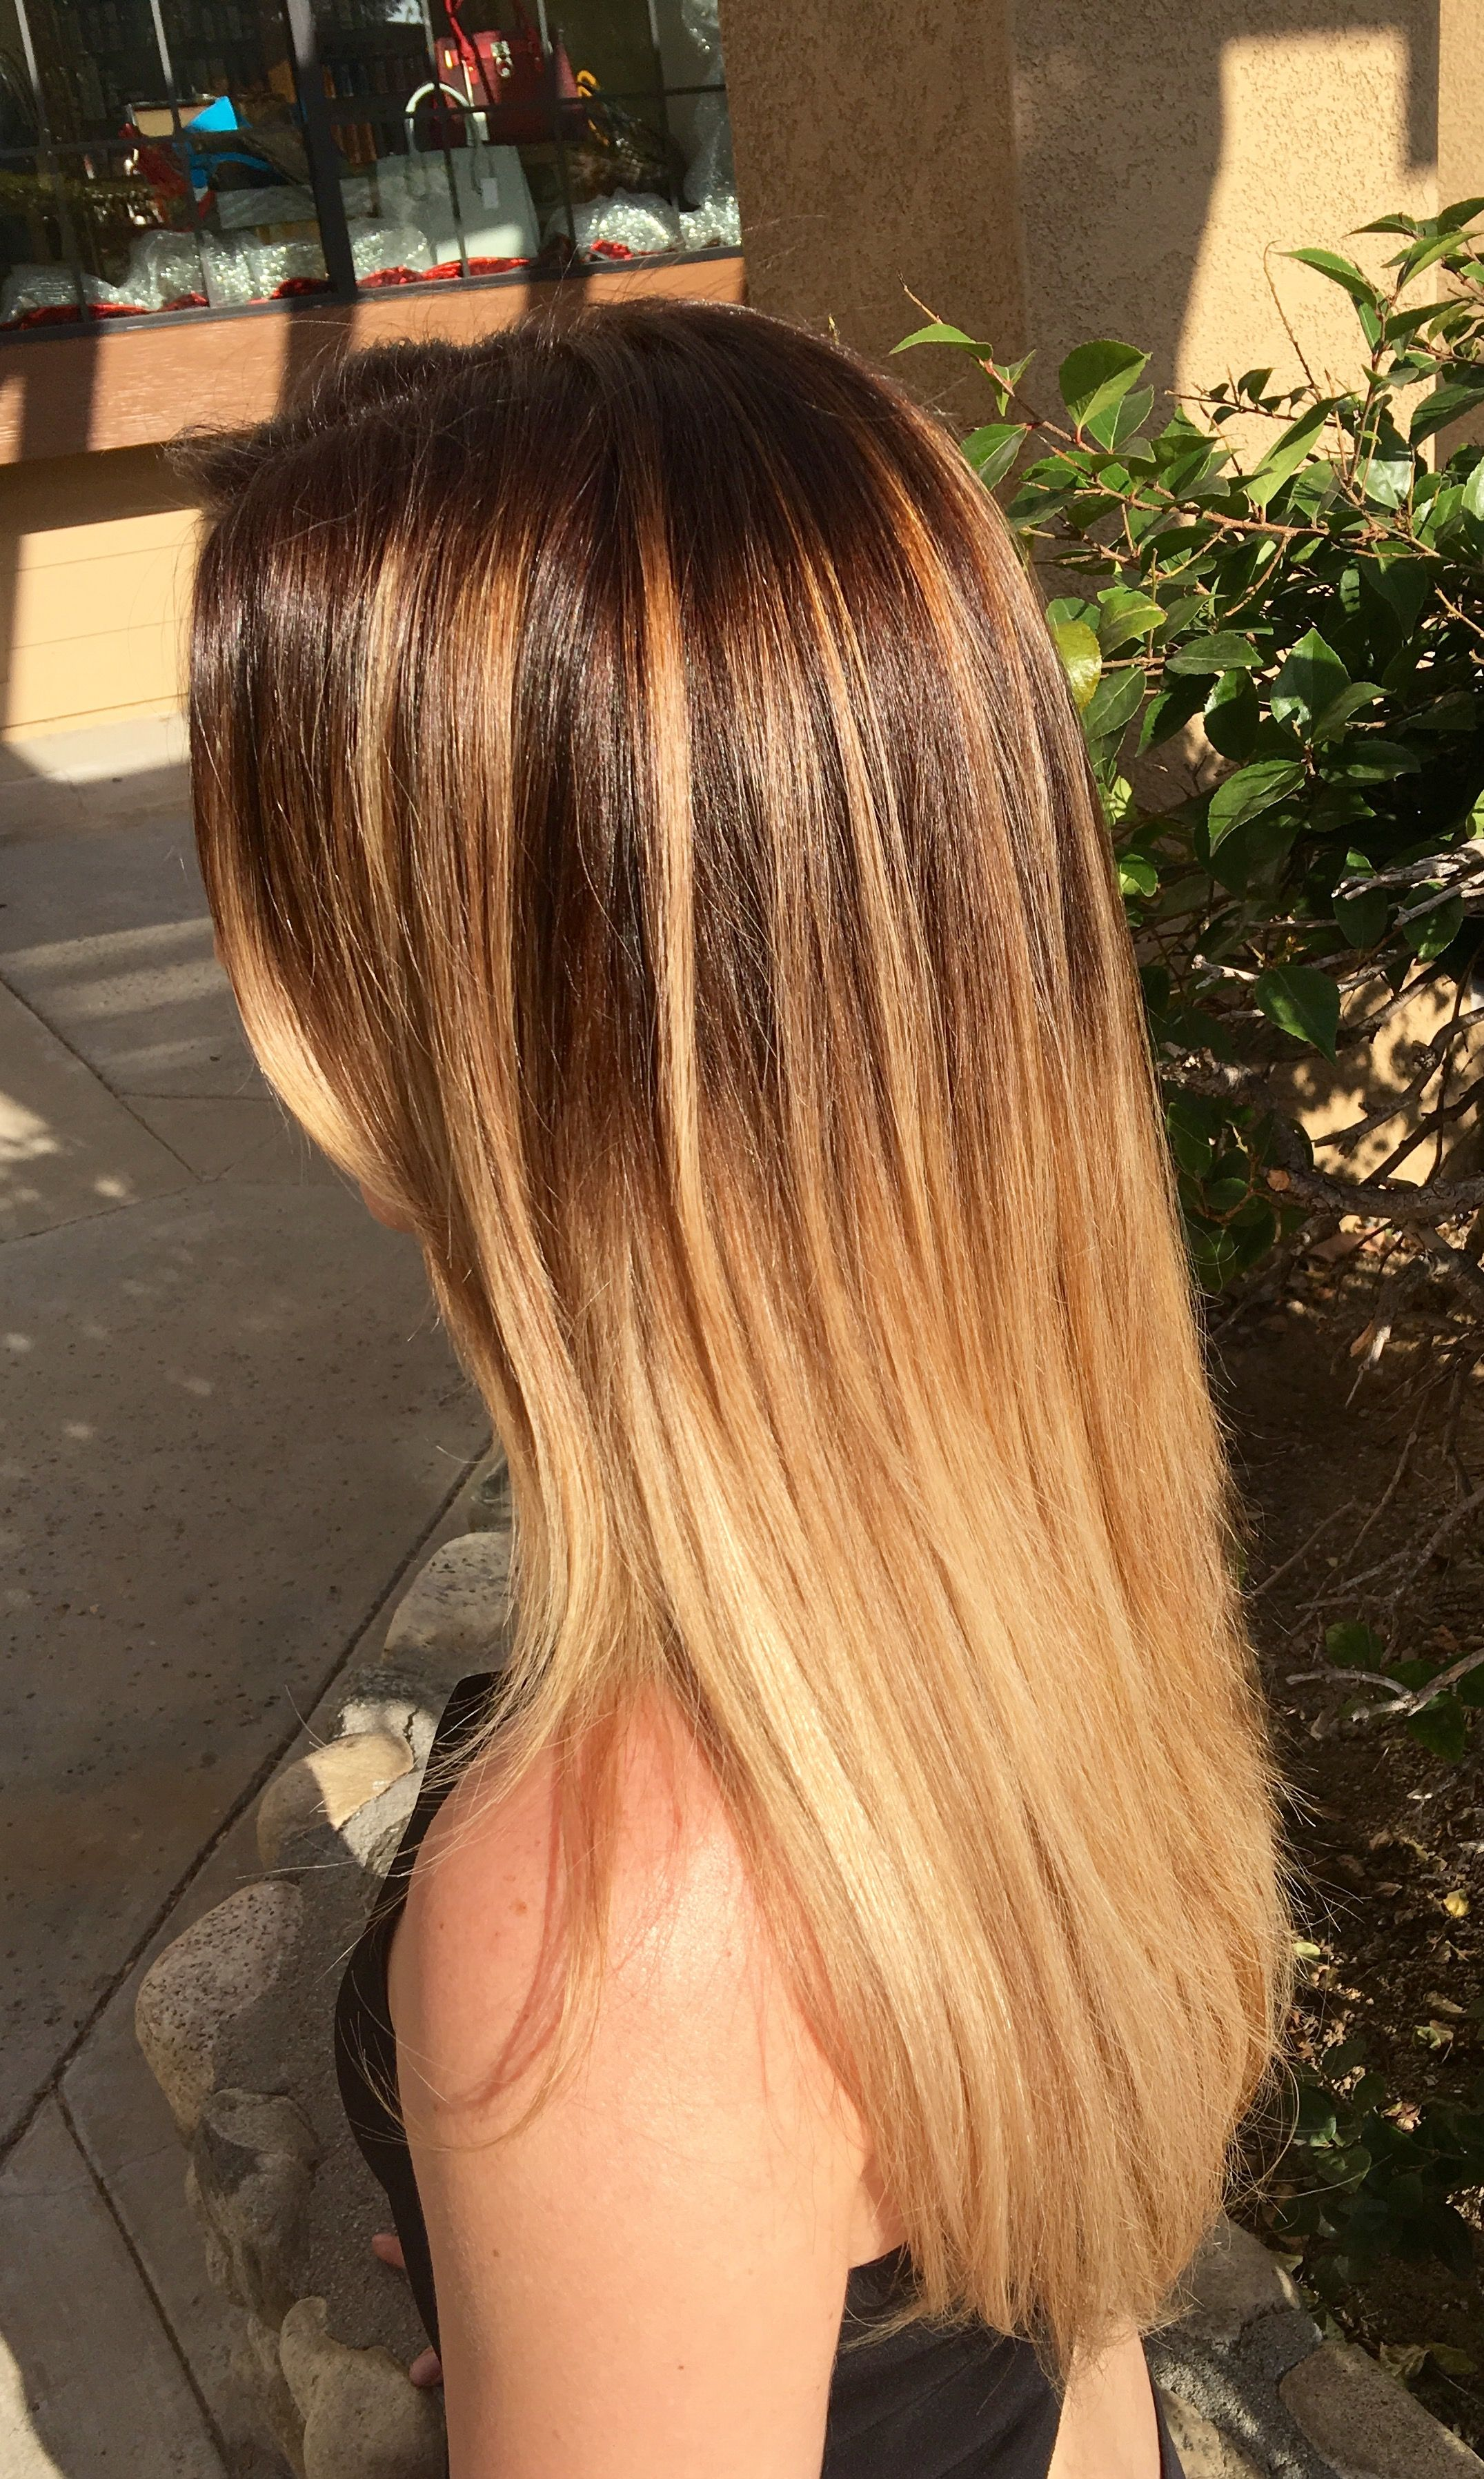 Photographing Hair Color Drastically Changes The Look With Late Afternoon Sun My Cool Toned Level 4 Ombre Takes On A Gold Glow Hair Hair Styles Hair Color